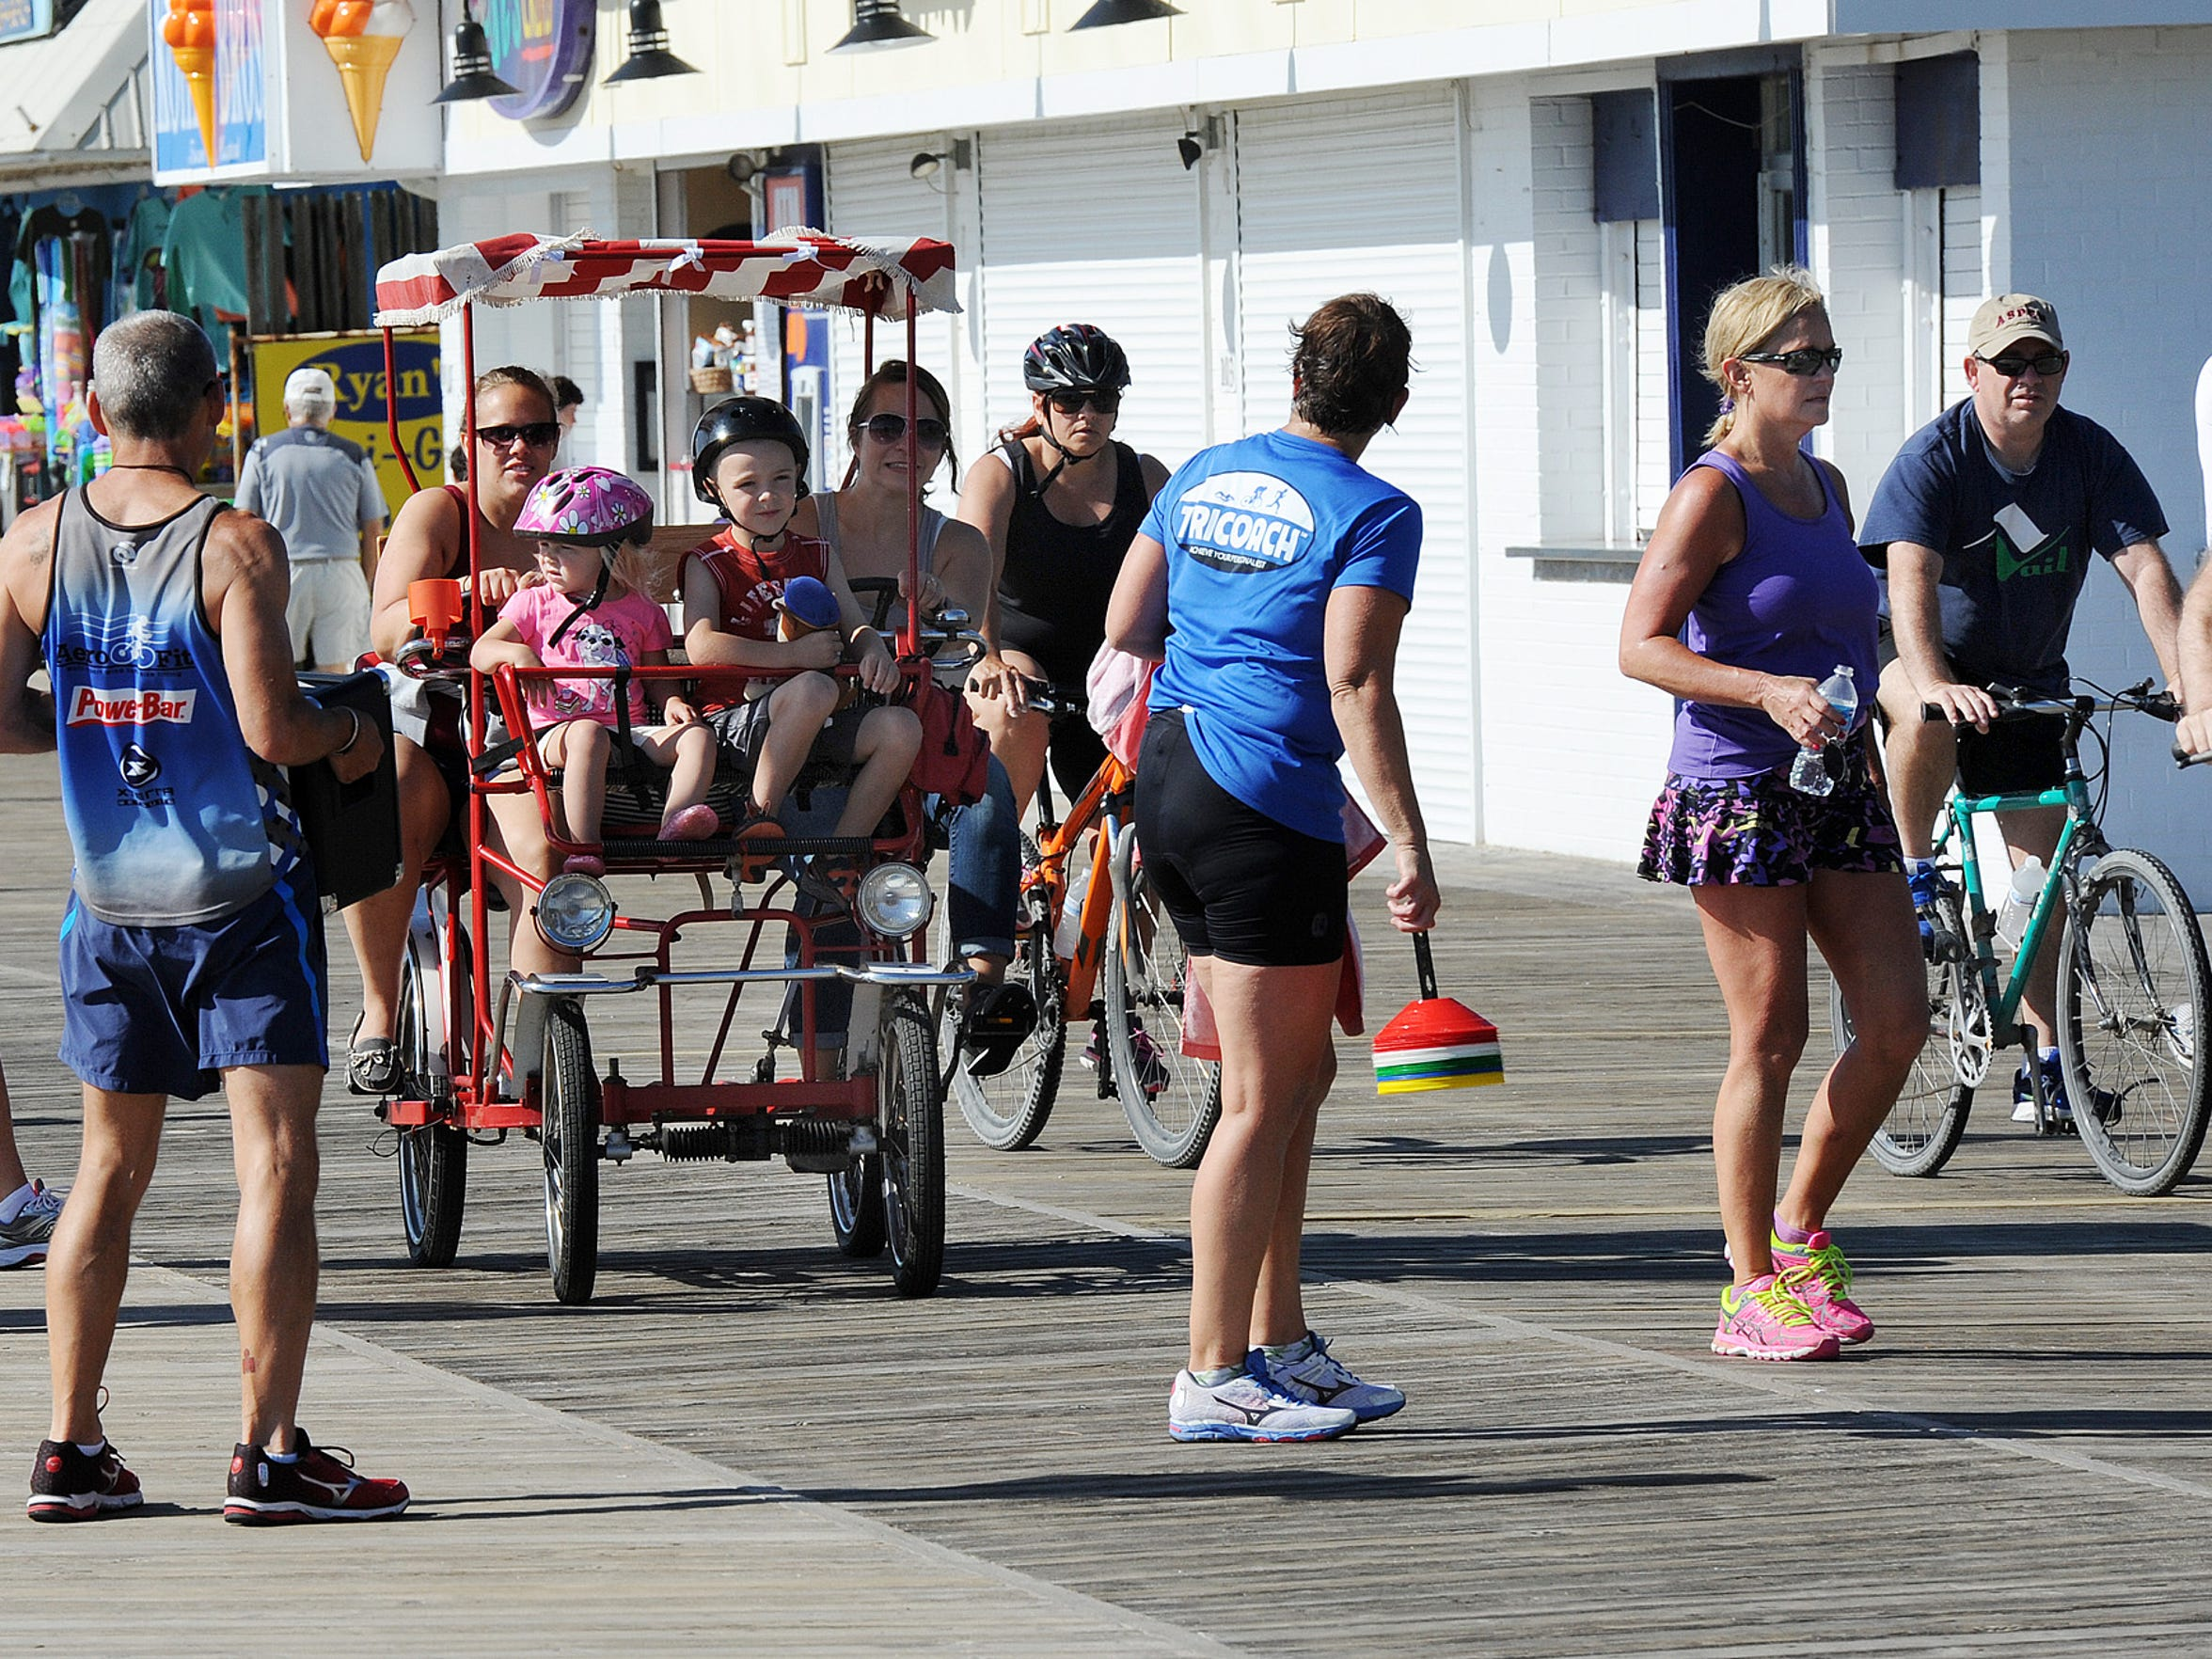 Bicyclists can ride the Boardwalk in Rehoboth Beach from 5 a.m.-10 a.m. daily, as they share with pedestrians.